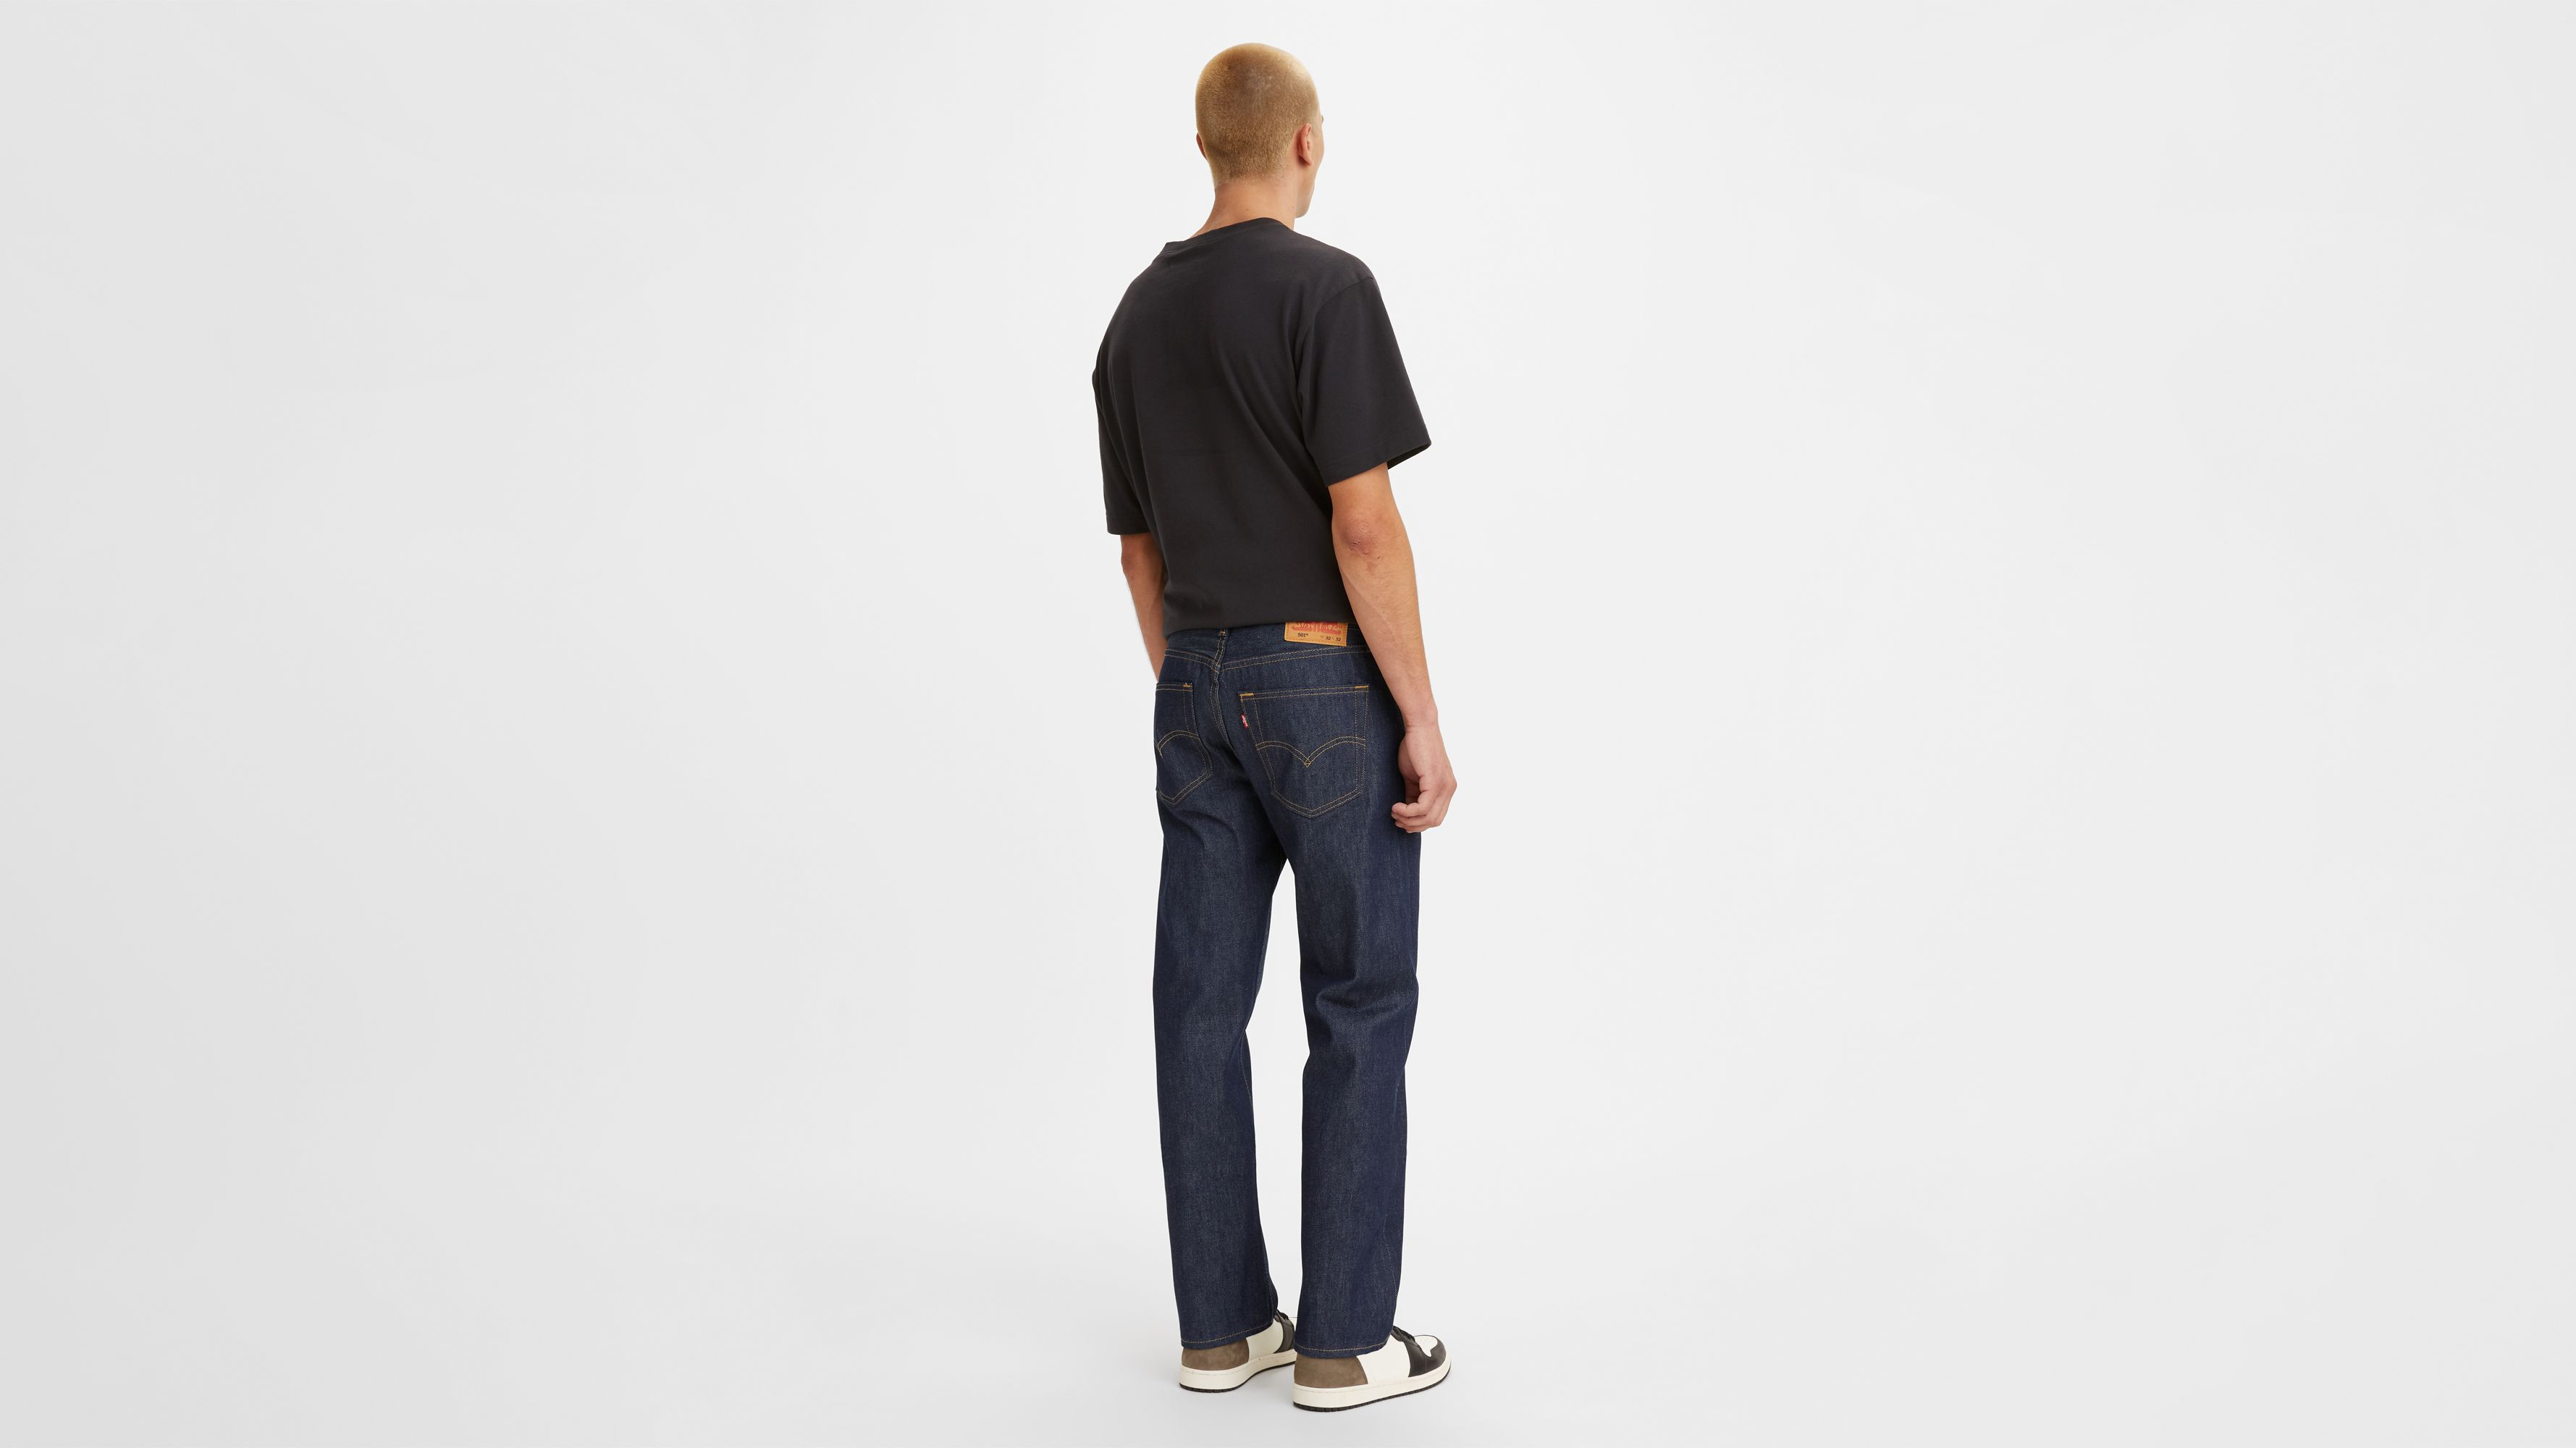 Mens Regular Fit Jeans Denim Trousers Pants With Free Belt All Waist Sizes 28-42